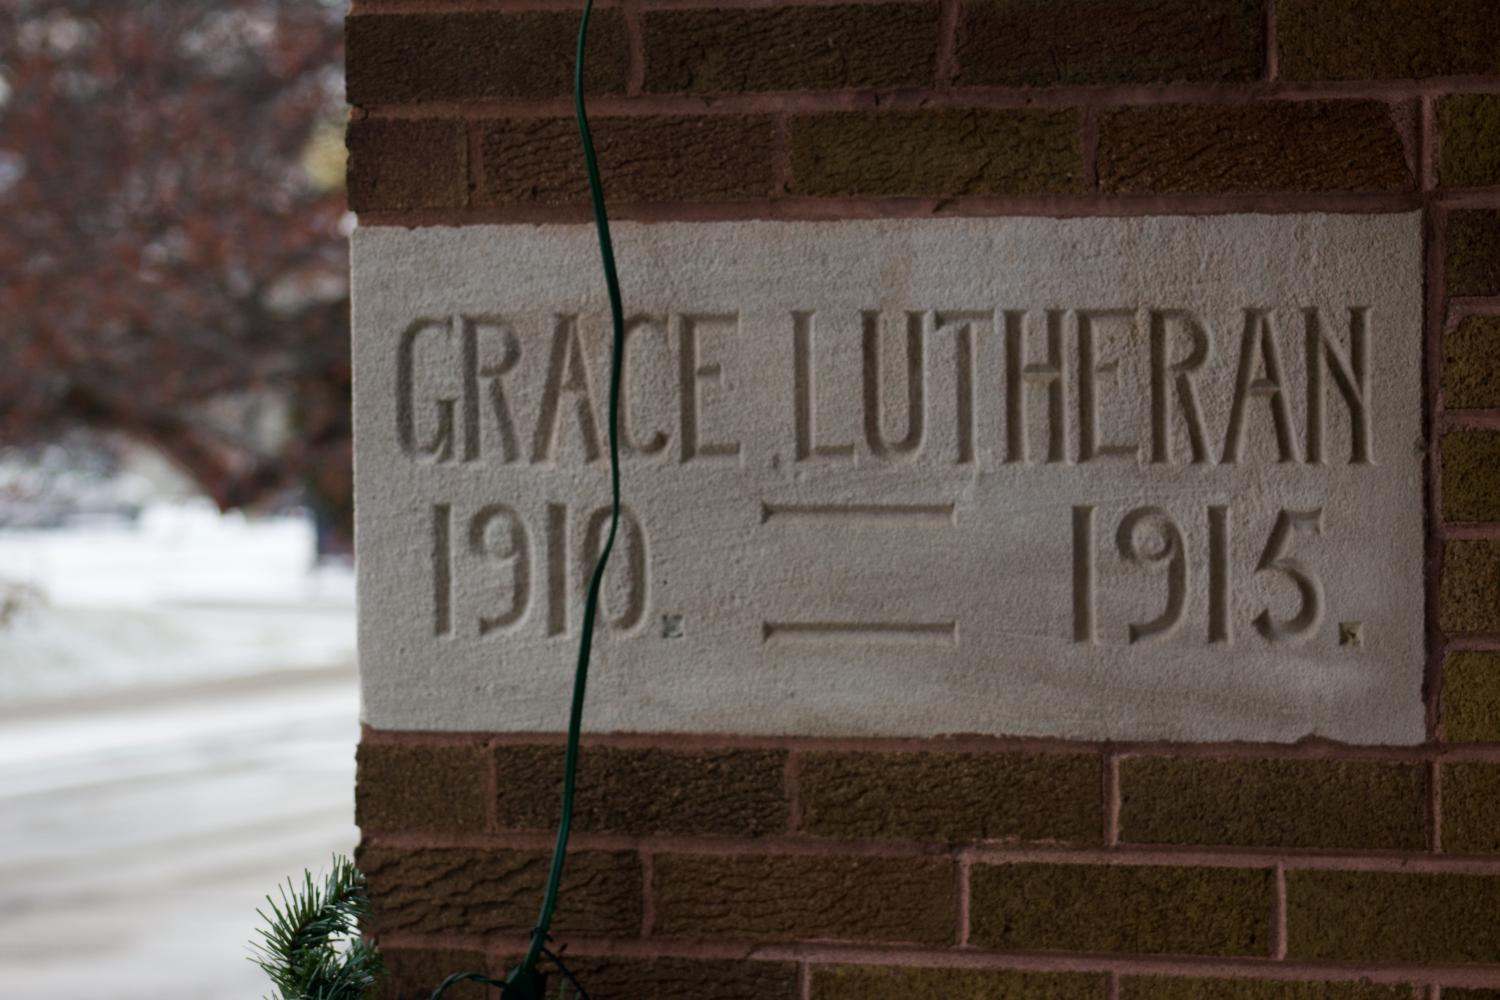 Grace Lutheran Church was one of the Poverty Summit's community contributors, offering its location for stakeholder engagement meetings. © 2017 Nicole Bellford